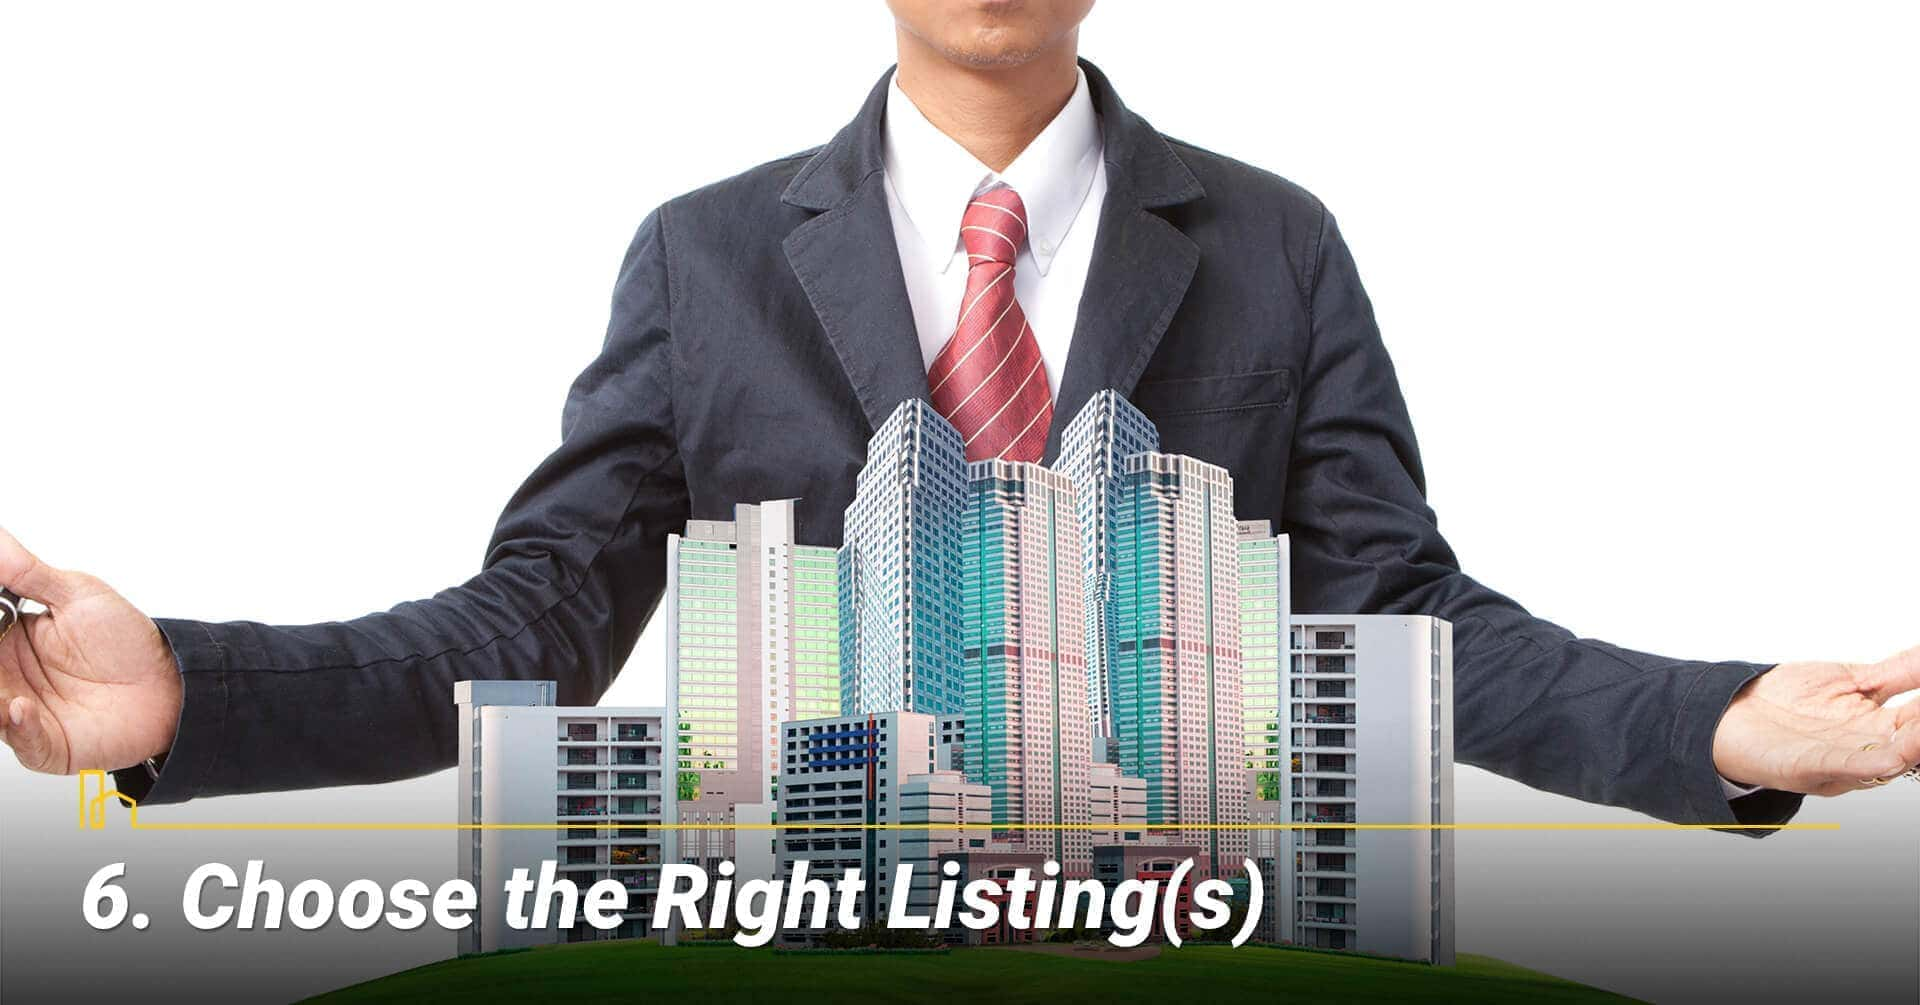 Choose the Right Listing(s), select the proper listing